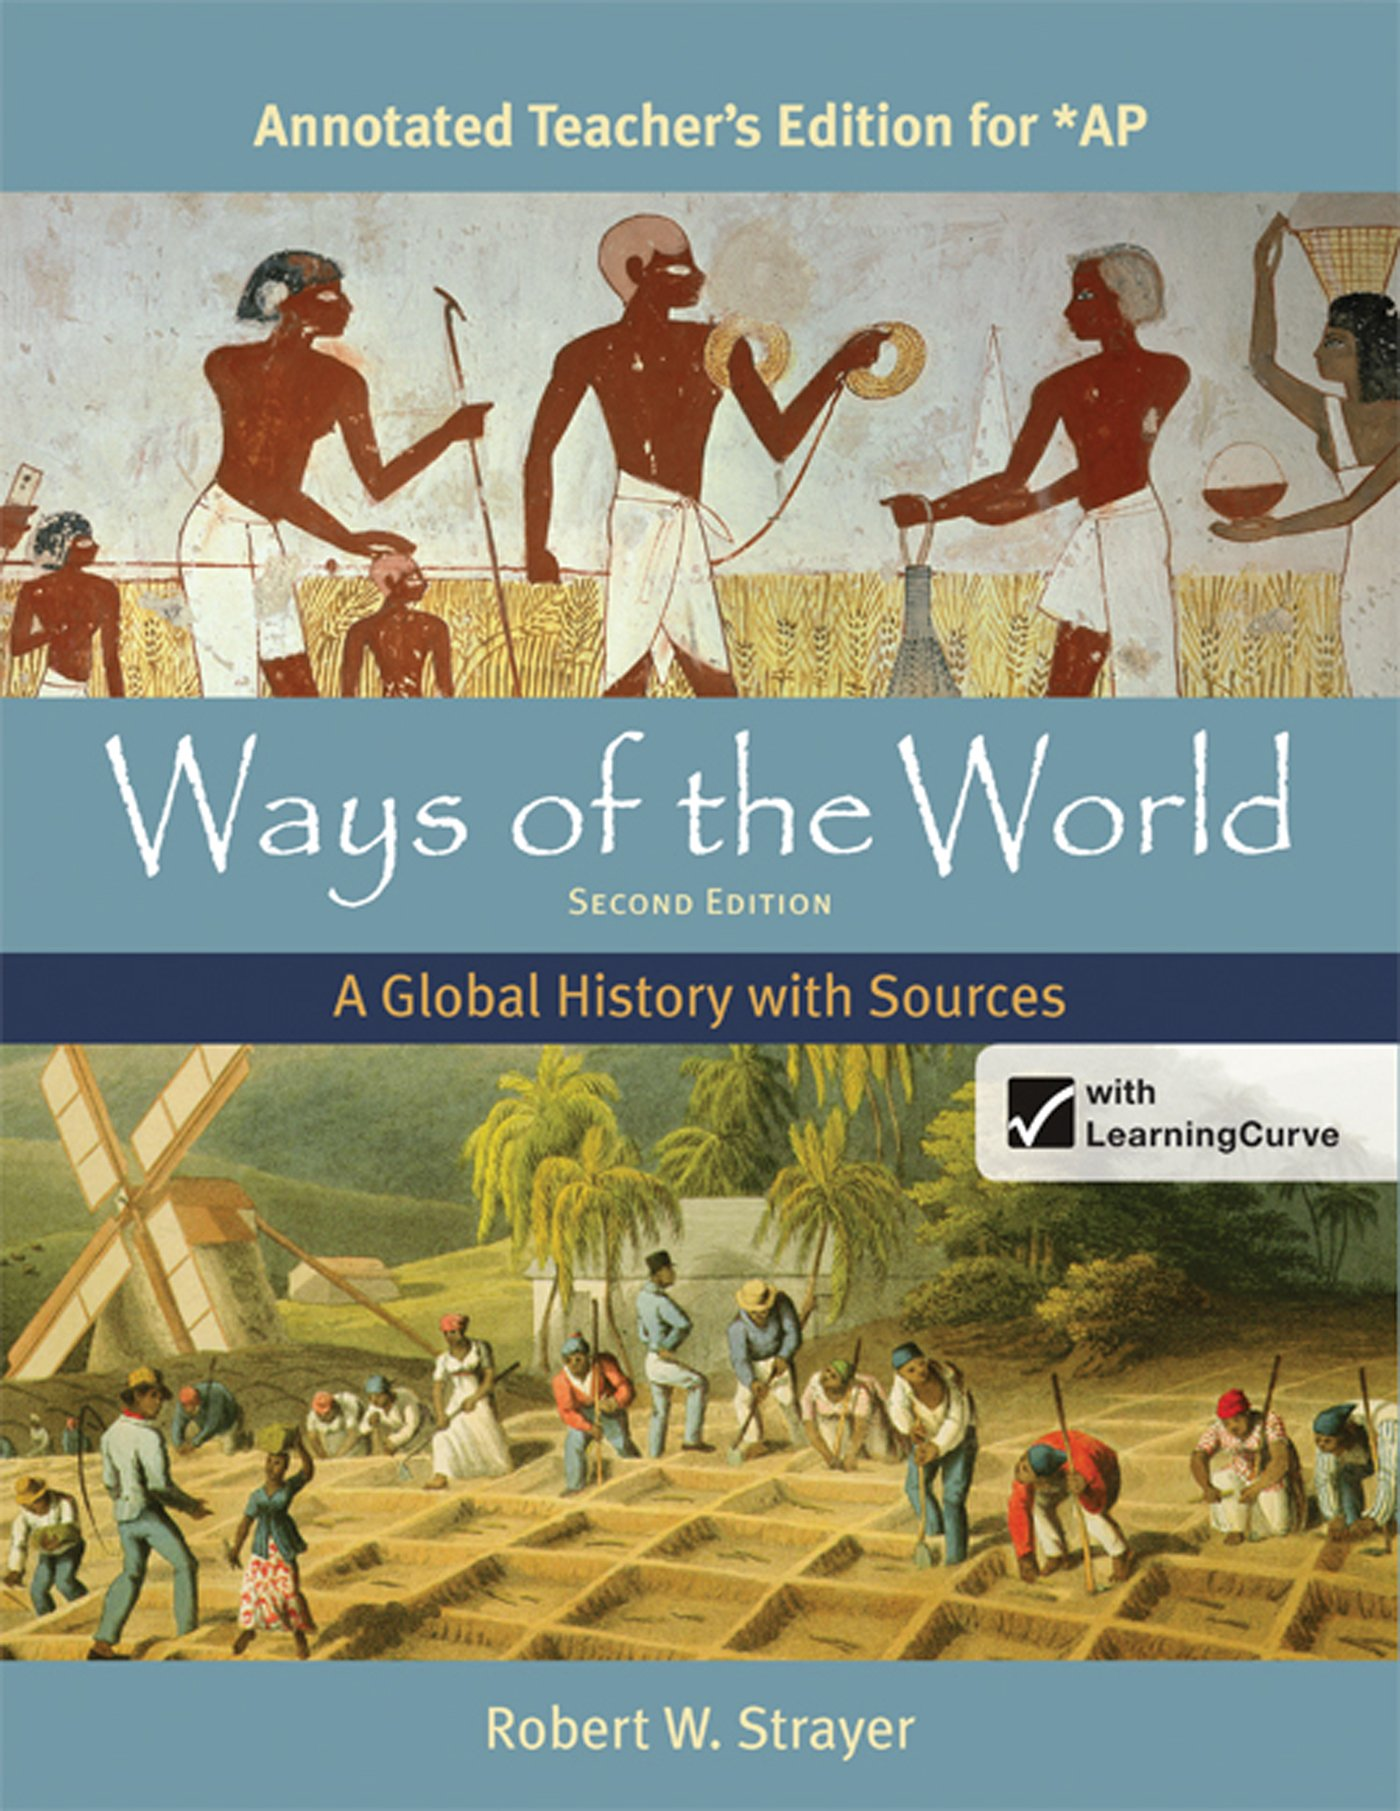 Ways of the World: A Global History with Sources for AP Annotated Teacher's Edition pdf